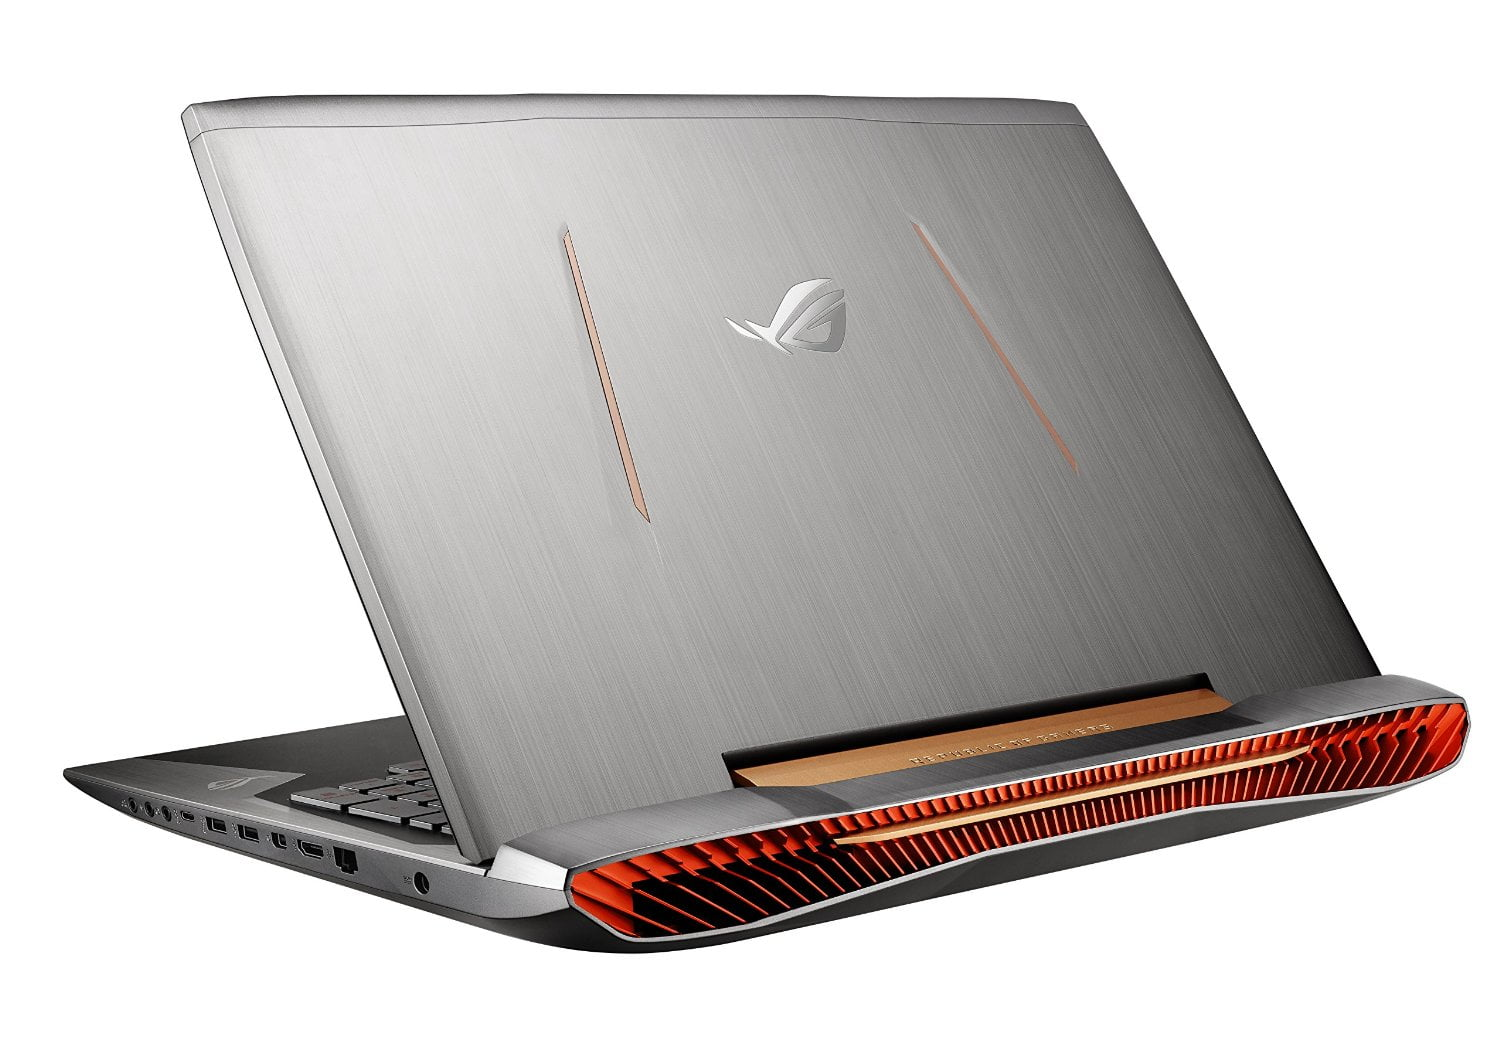 Best ASUS Quad Core Laptops 2016